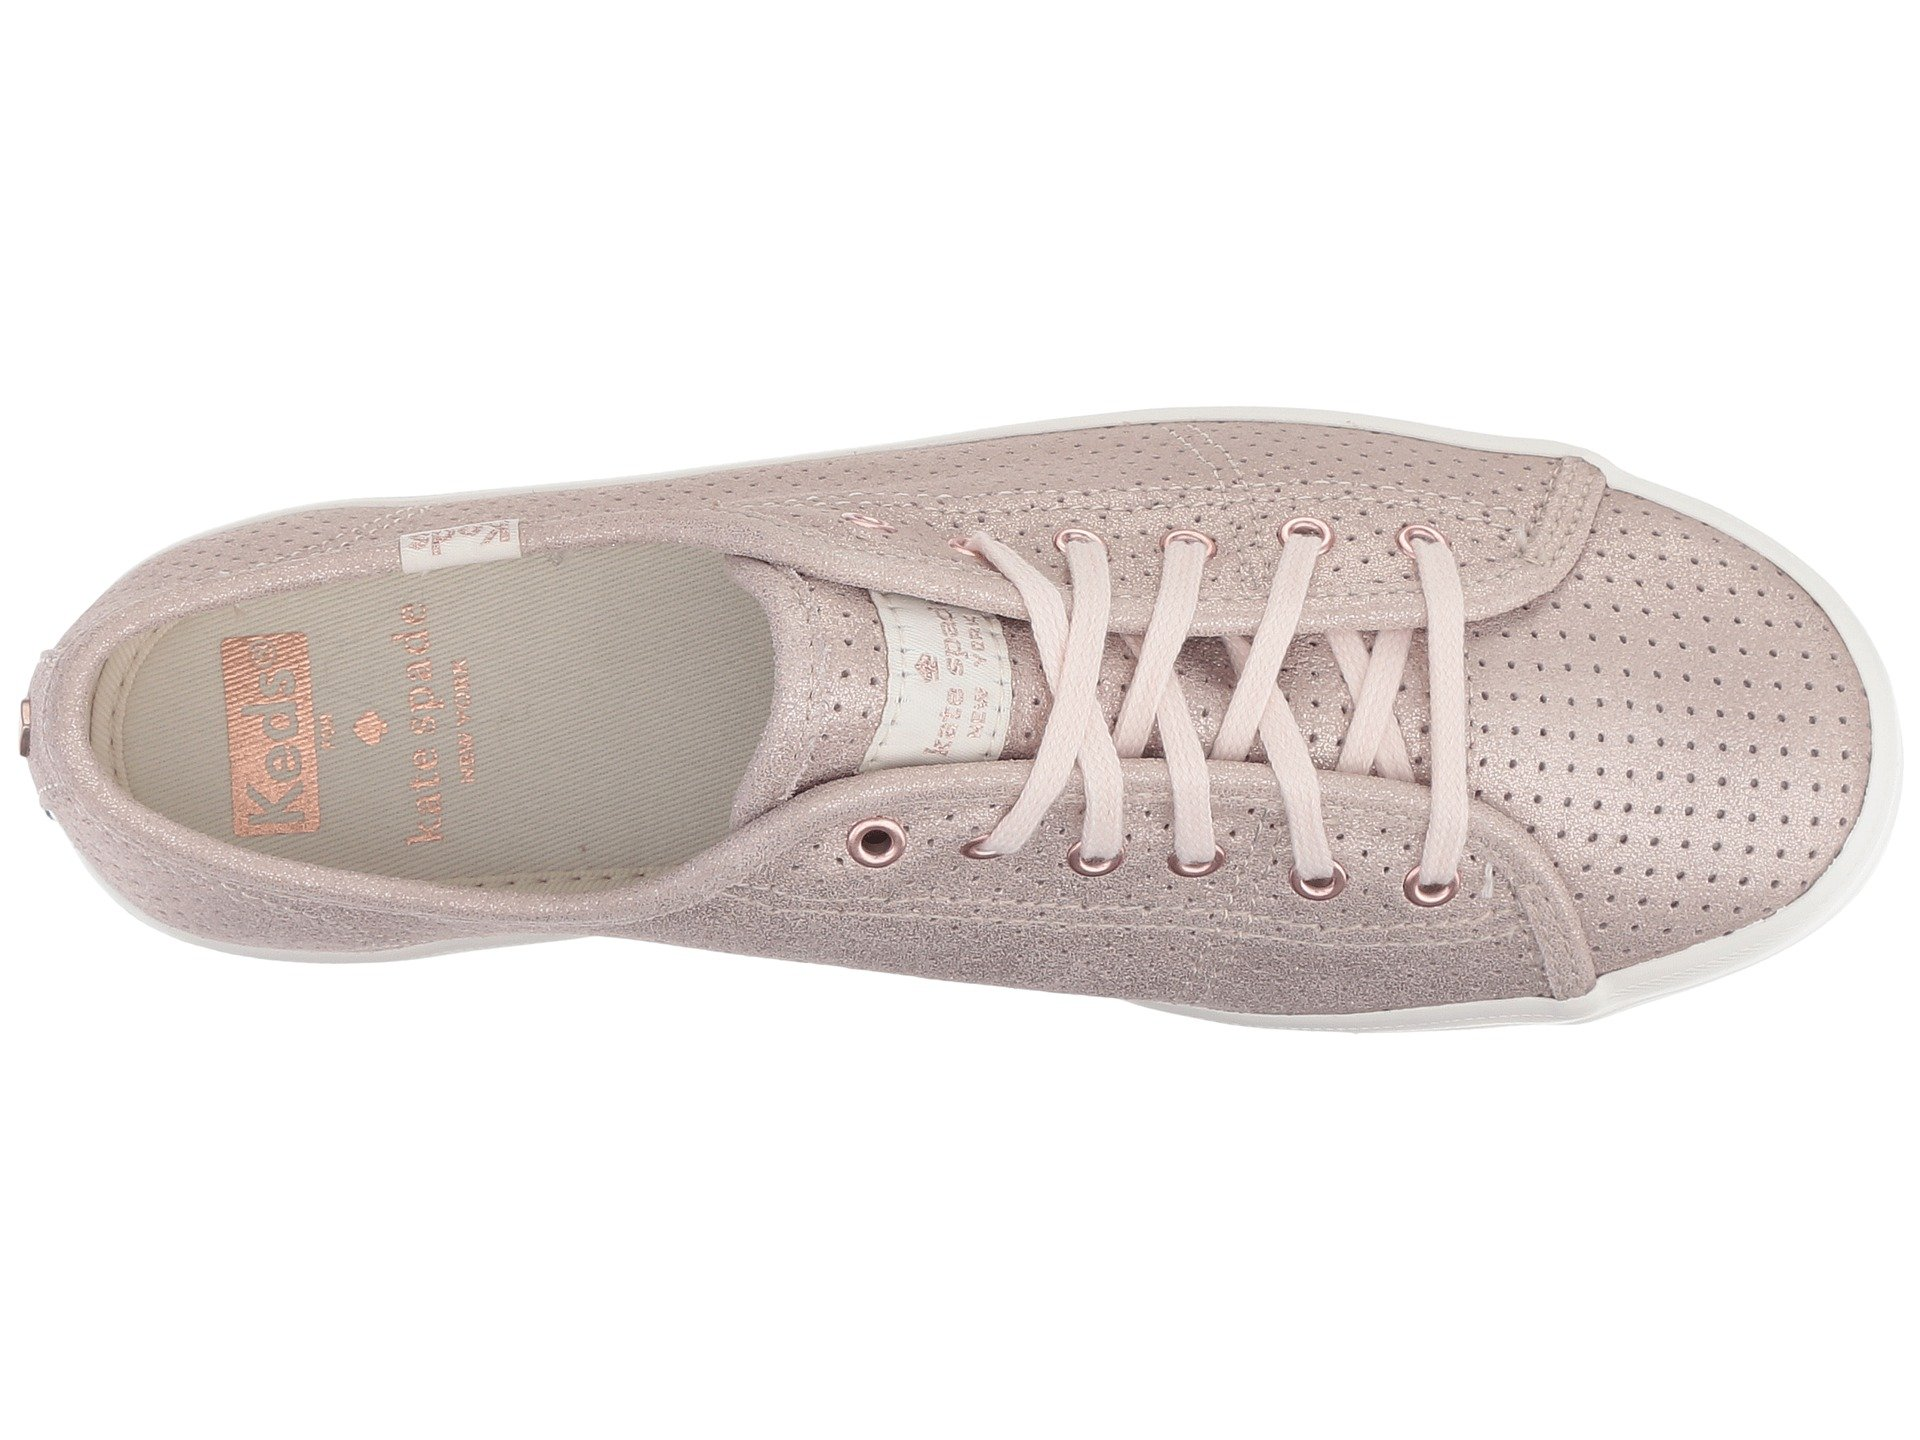 dadd1ee68e6 Keds x kate spade new york Kickstart Perforated Shimmer at Luxury.Zappos.com